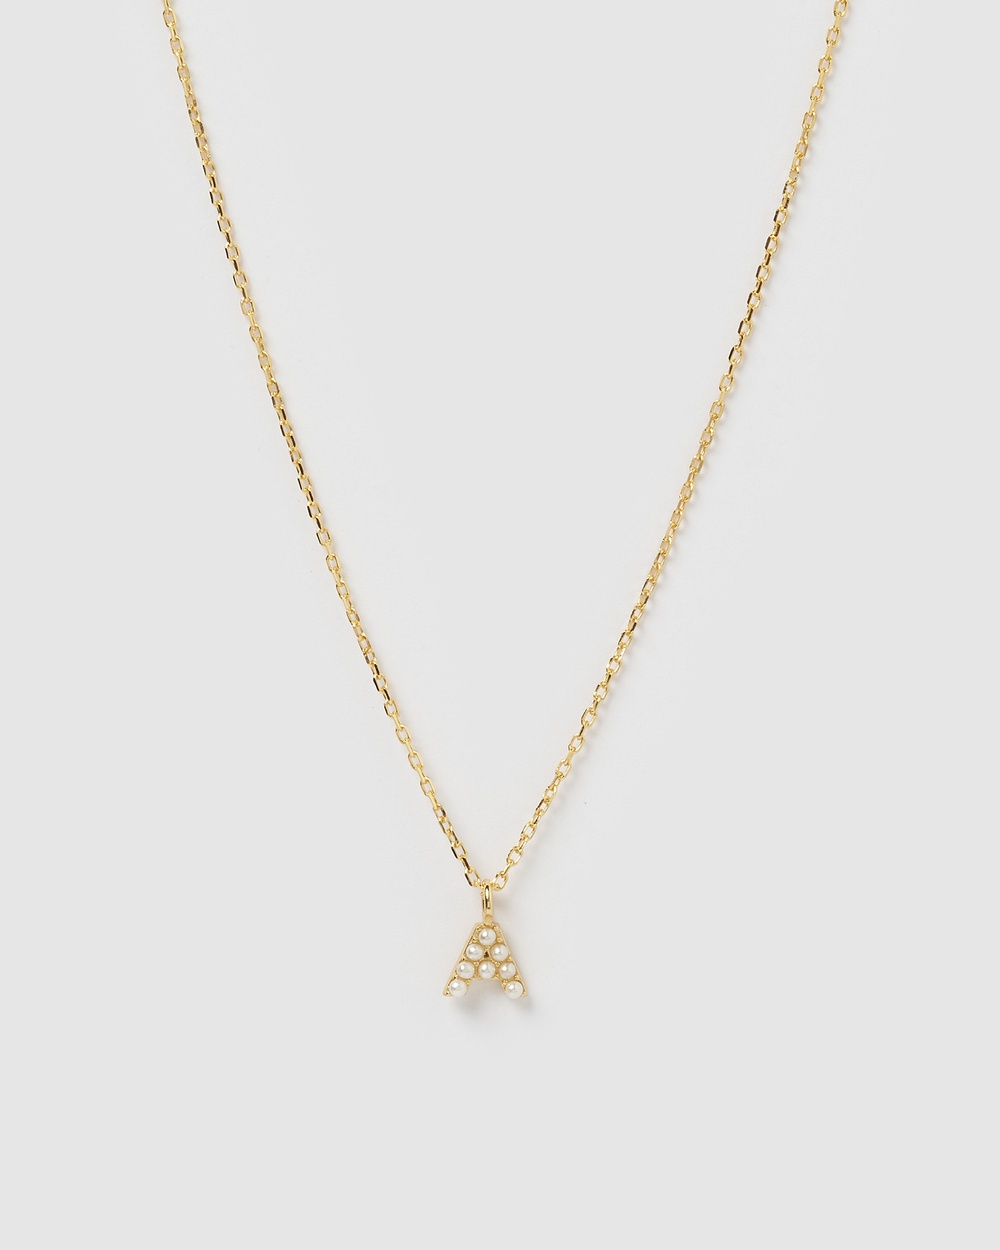 Izoa Pearl Letter A Necklace Gold Jewellery Gold